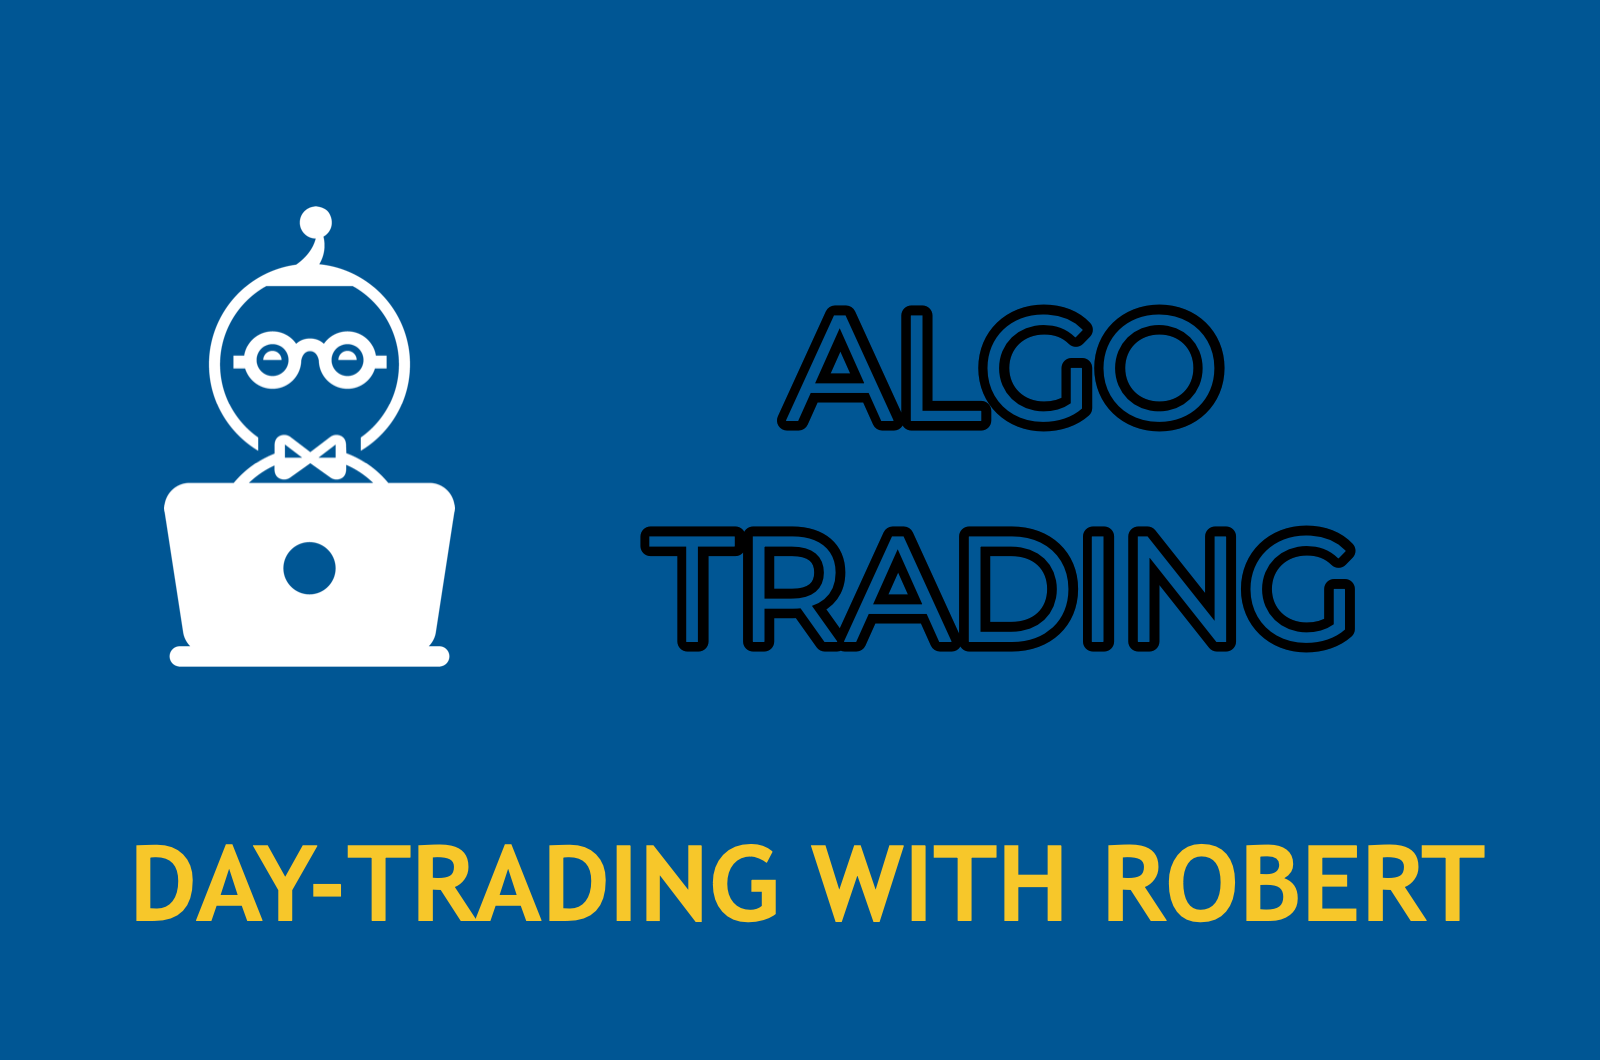 ALGO TRADING    DAY-TRADING WITH ROBERT    ENTER